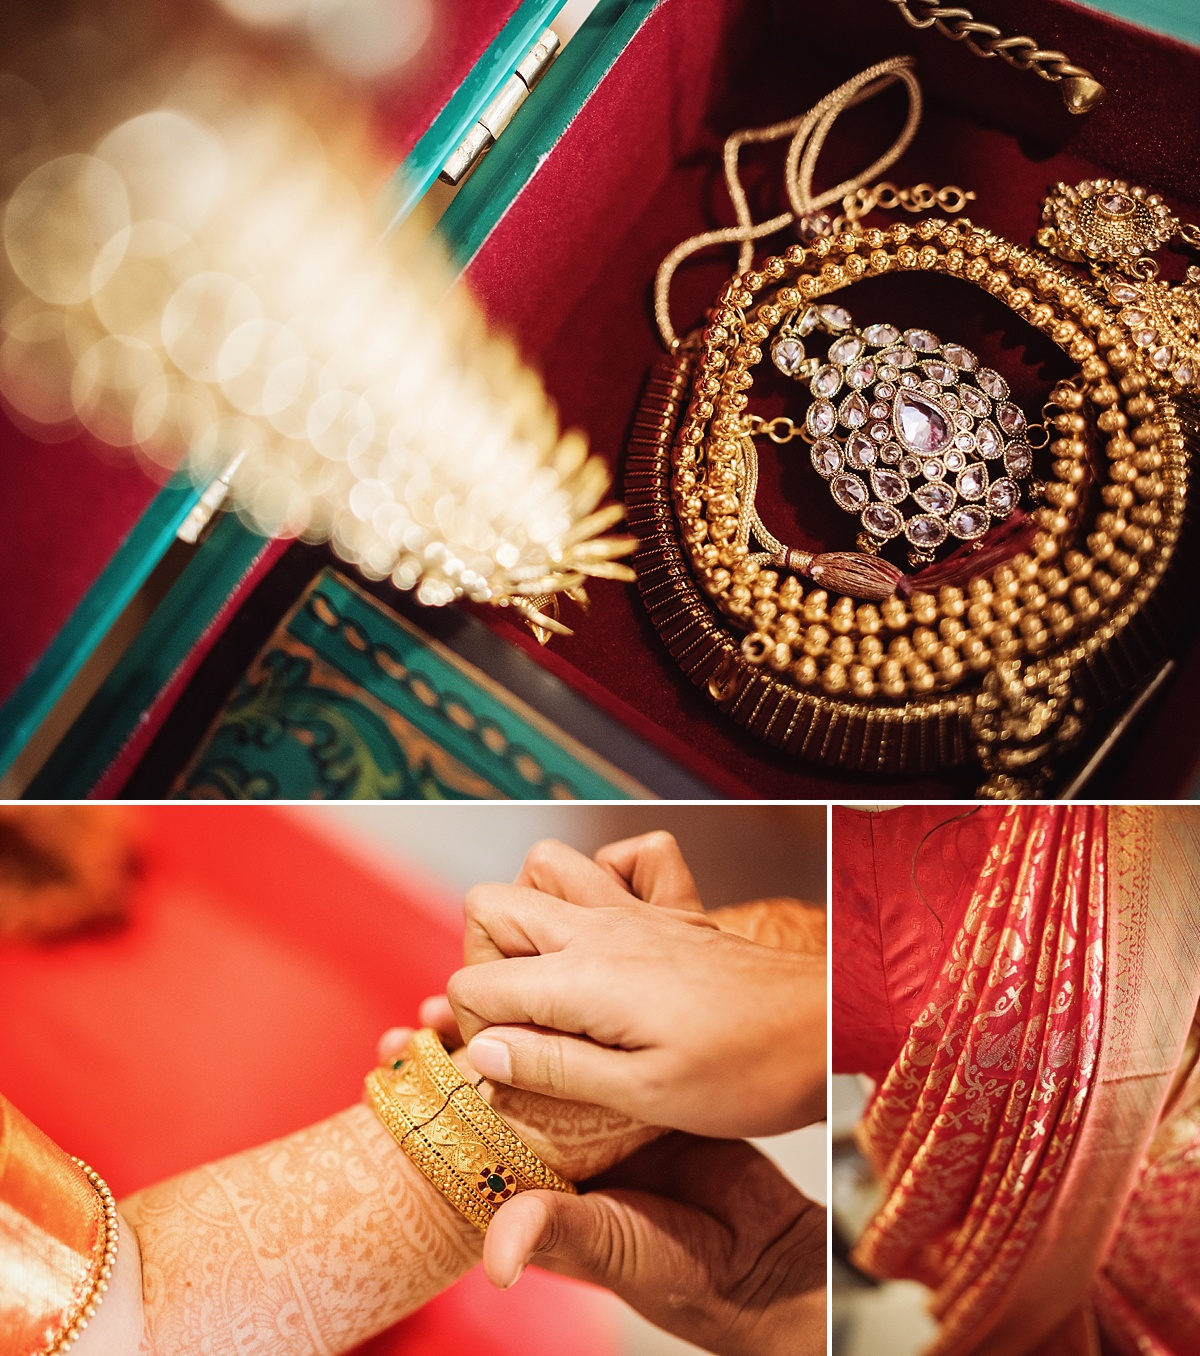 RUUDC Fotografie, destination wedding photographer, destination wedding fotograaf, destination wedding photographer india, destination wedding photographer calicut, wedding photographer india, wedding photographer calicut, trouwfotograaf, trouwen in het buitenland, bruidsfotograaf, beste bruidsfotograaf, fotograaf trouwen buitenland, bruidsfotograaf destination wedding, trouwfotograaf destination wedding, fotograaf destination wedding, beste bruidsfotograaf